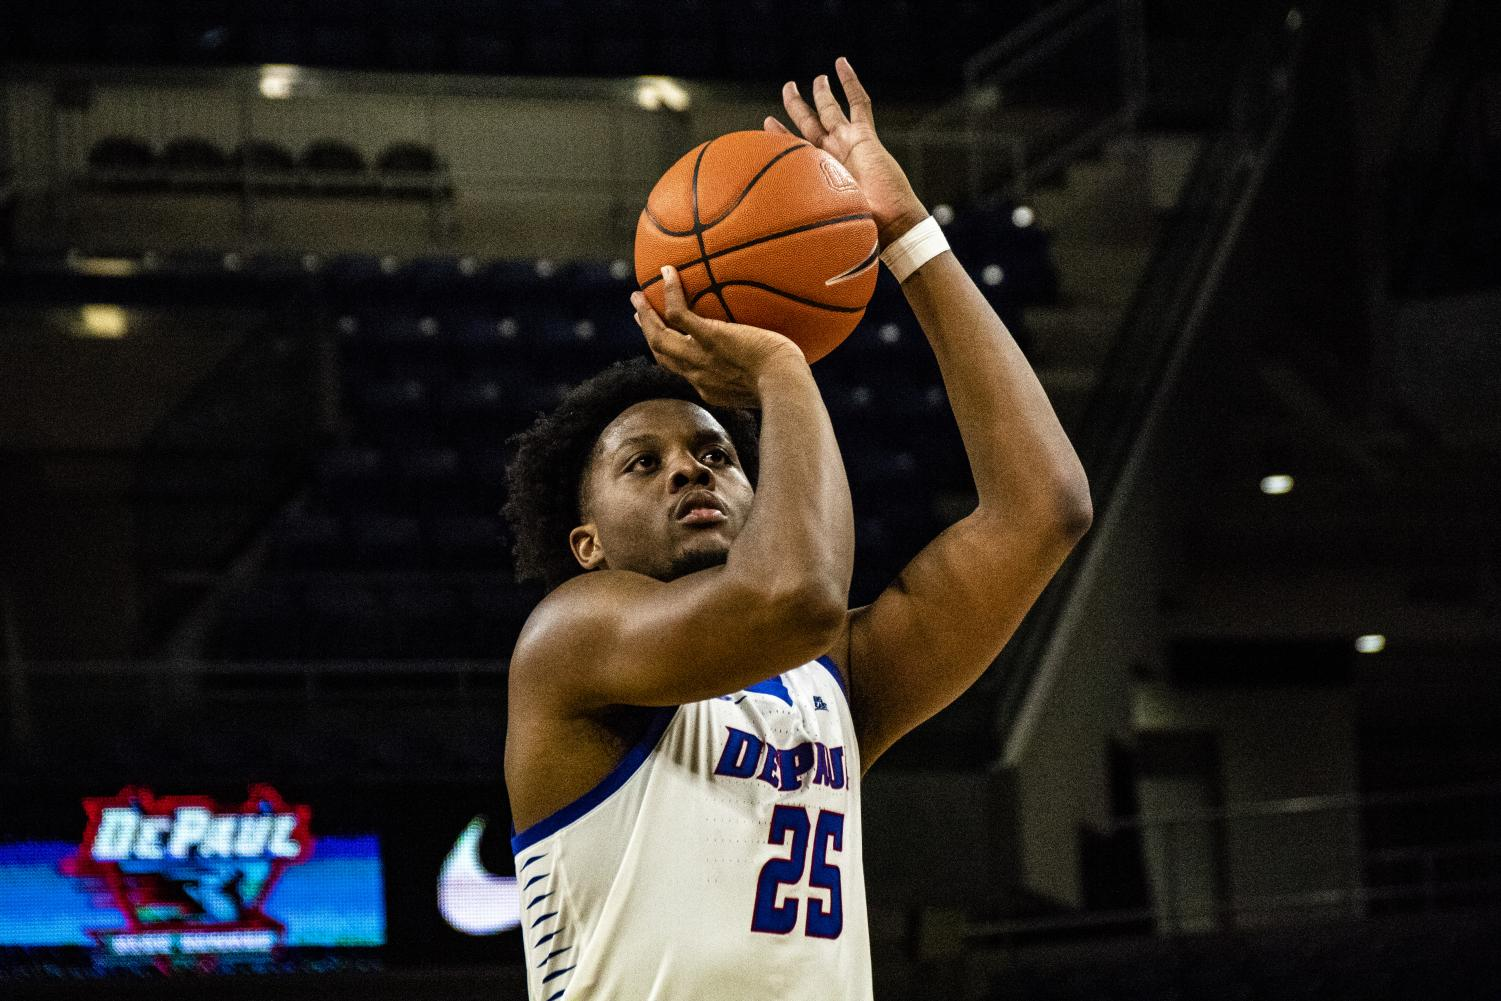 Femi Olujobi poured in 16 points on 6-for-7 from the field and grabbed seven rebounds in the Blue Demons 65-50 win against Florida A&M Monday night. Richard Bodee I The DePaulia